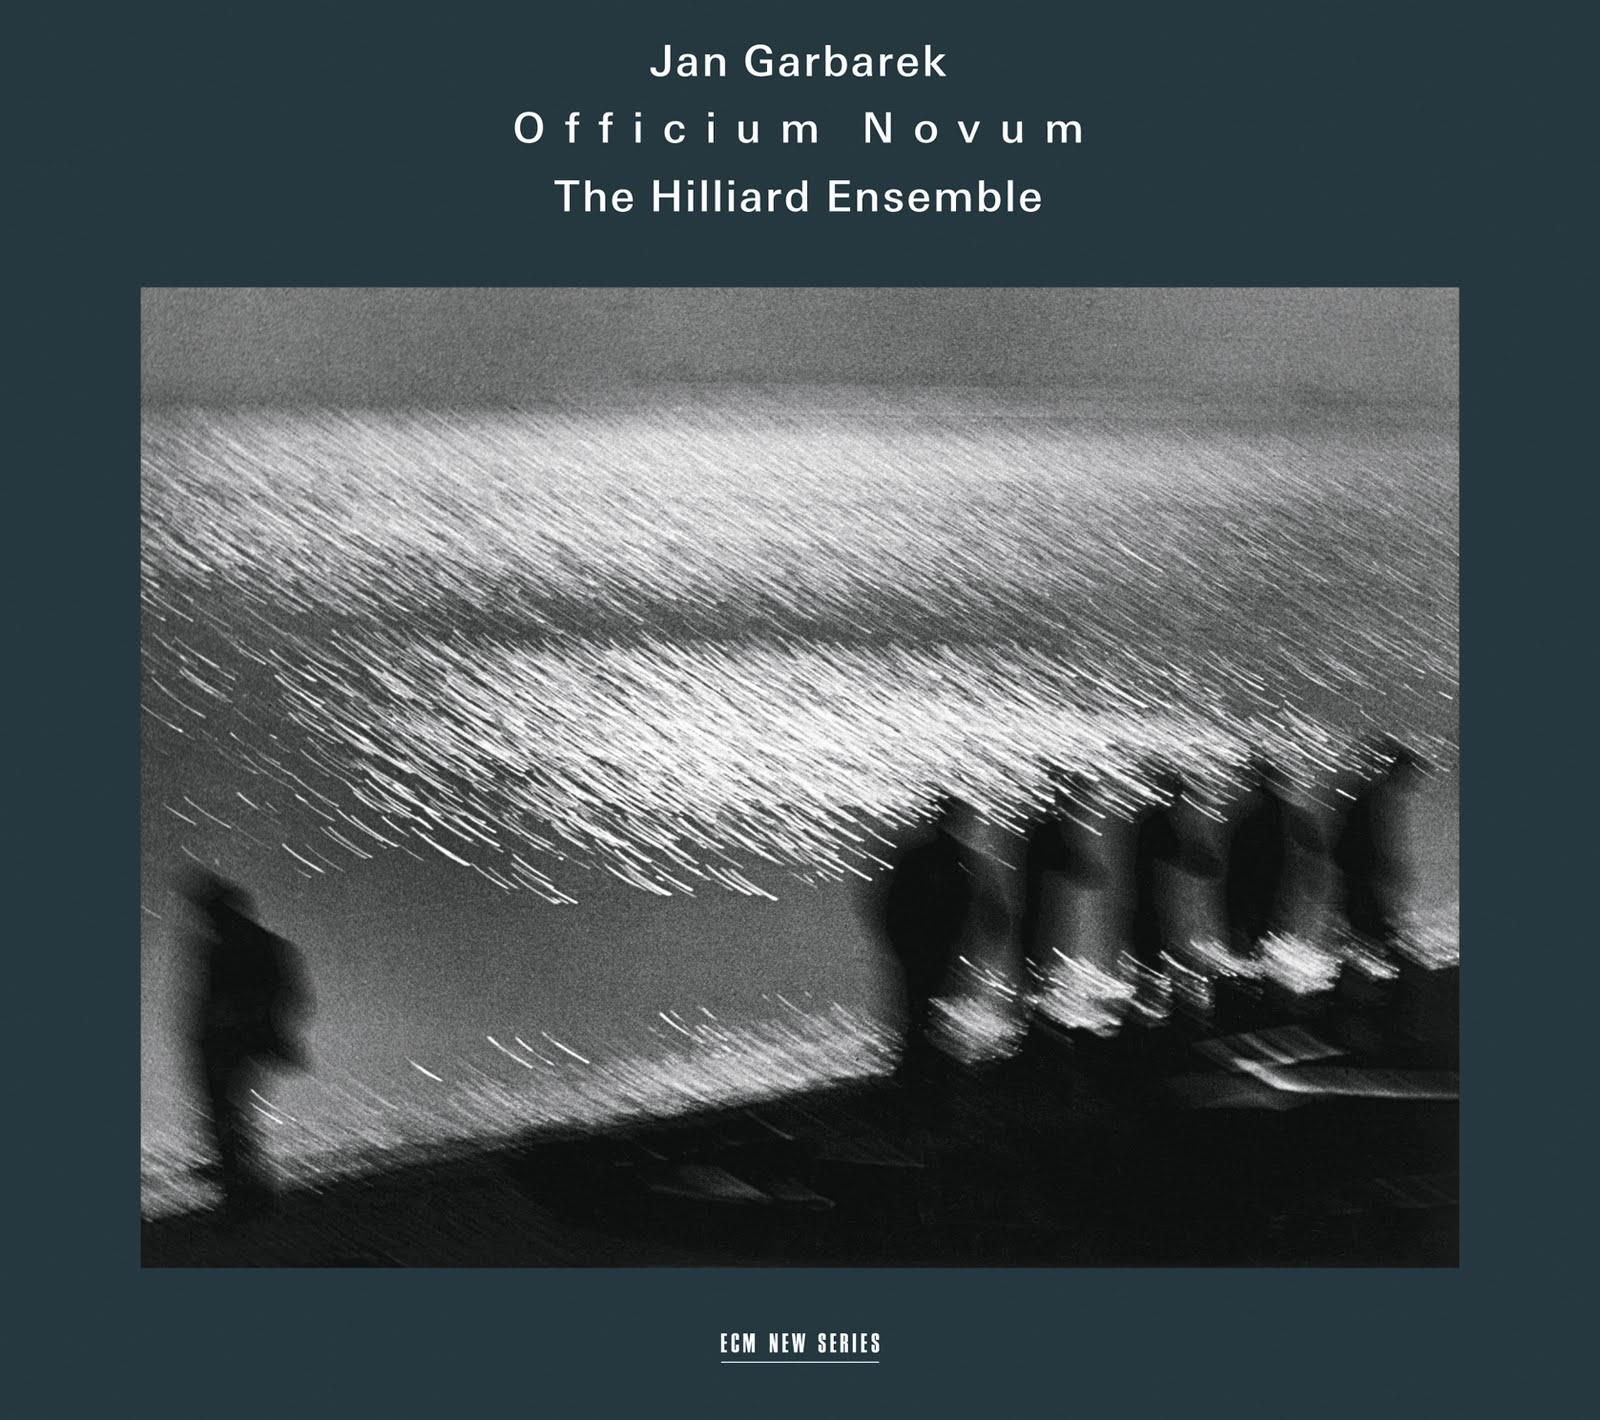 Garbarek, Jan / The Hilliard Ensemble Officium Novum